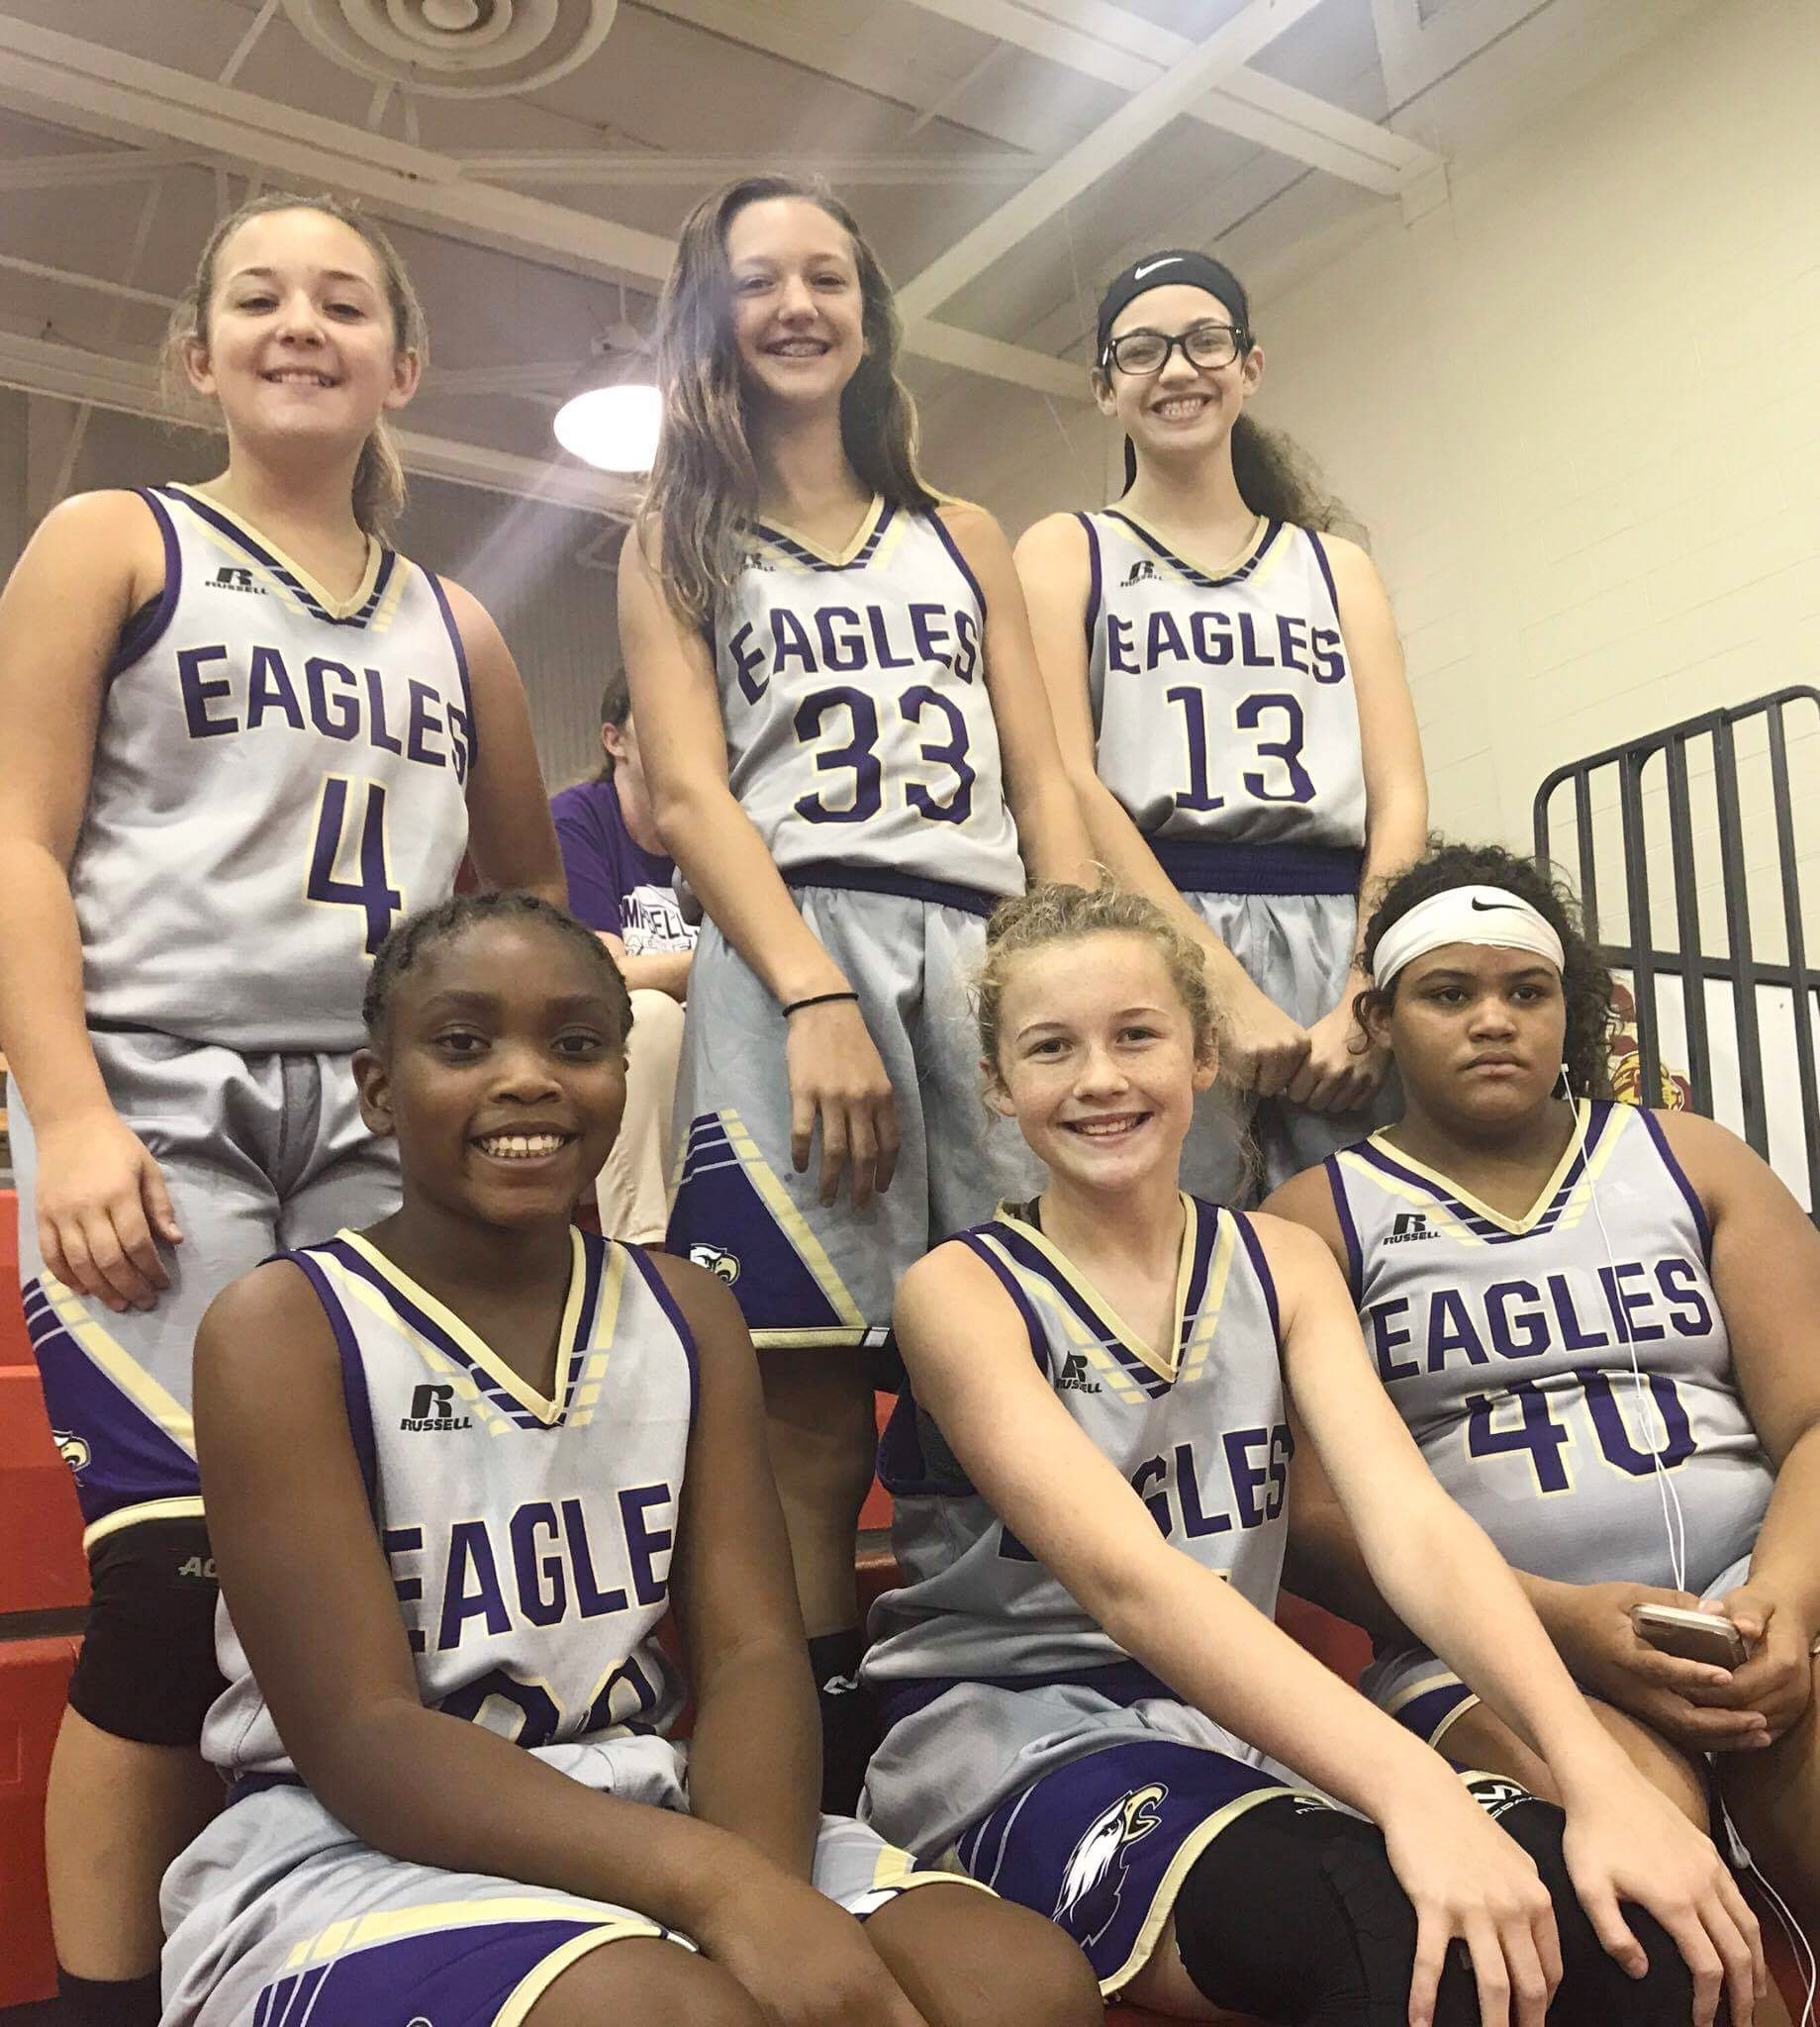 Some of the CMS girls' basketball players pose for a photo before their game. From left, front, are Campbellsville Elementary School fifth-grader Ta'Zaria Owens and seventh-graders Dakota Slone and Asia Barbour. Back, seventh-graders Briana Davis, Bri Hayes and Mary Russell.